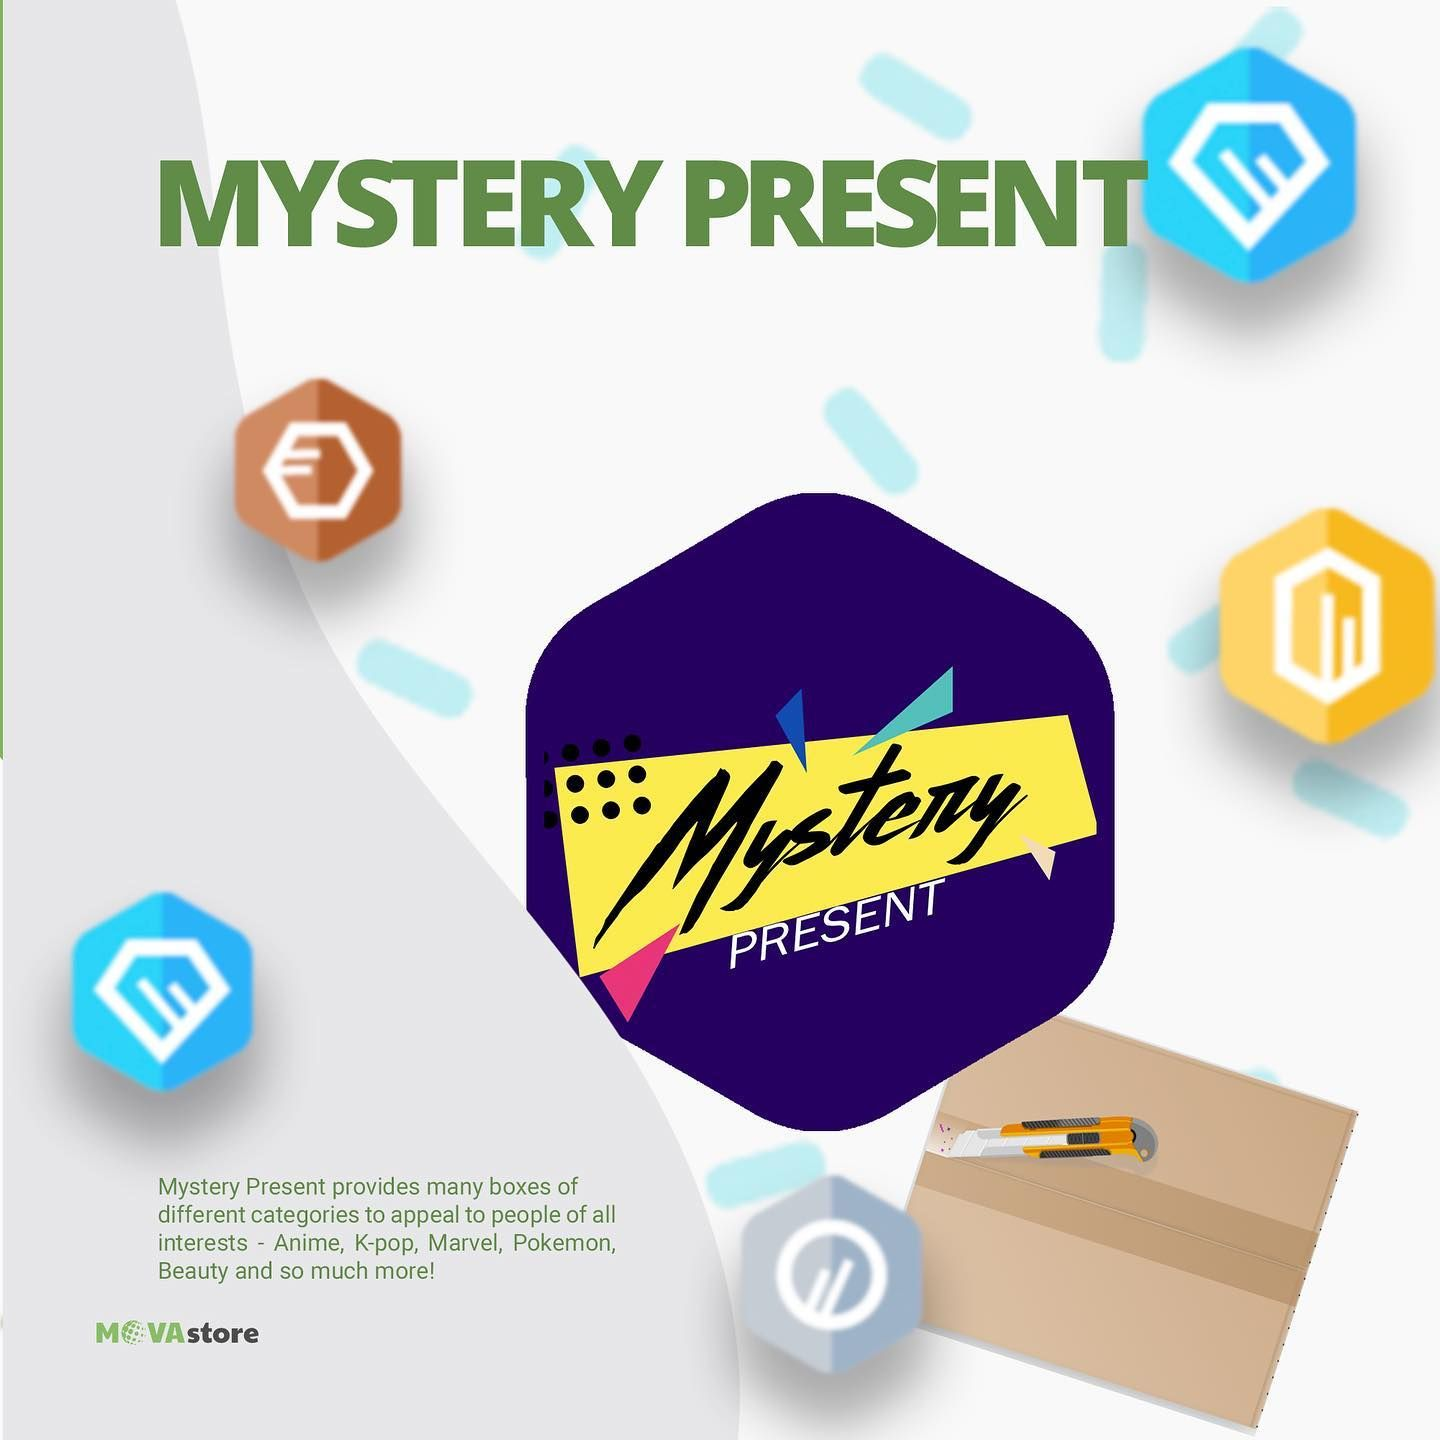 Hidden mystery image by movastore on movastore instagram